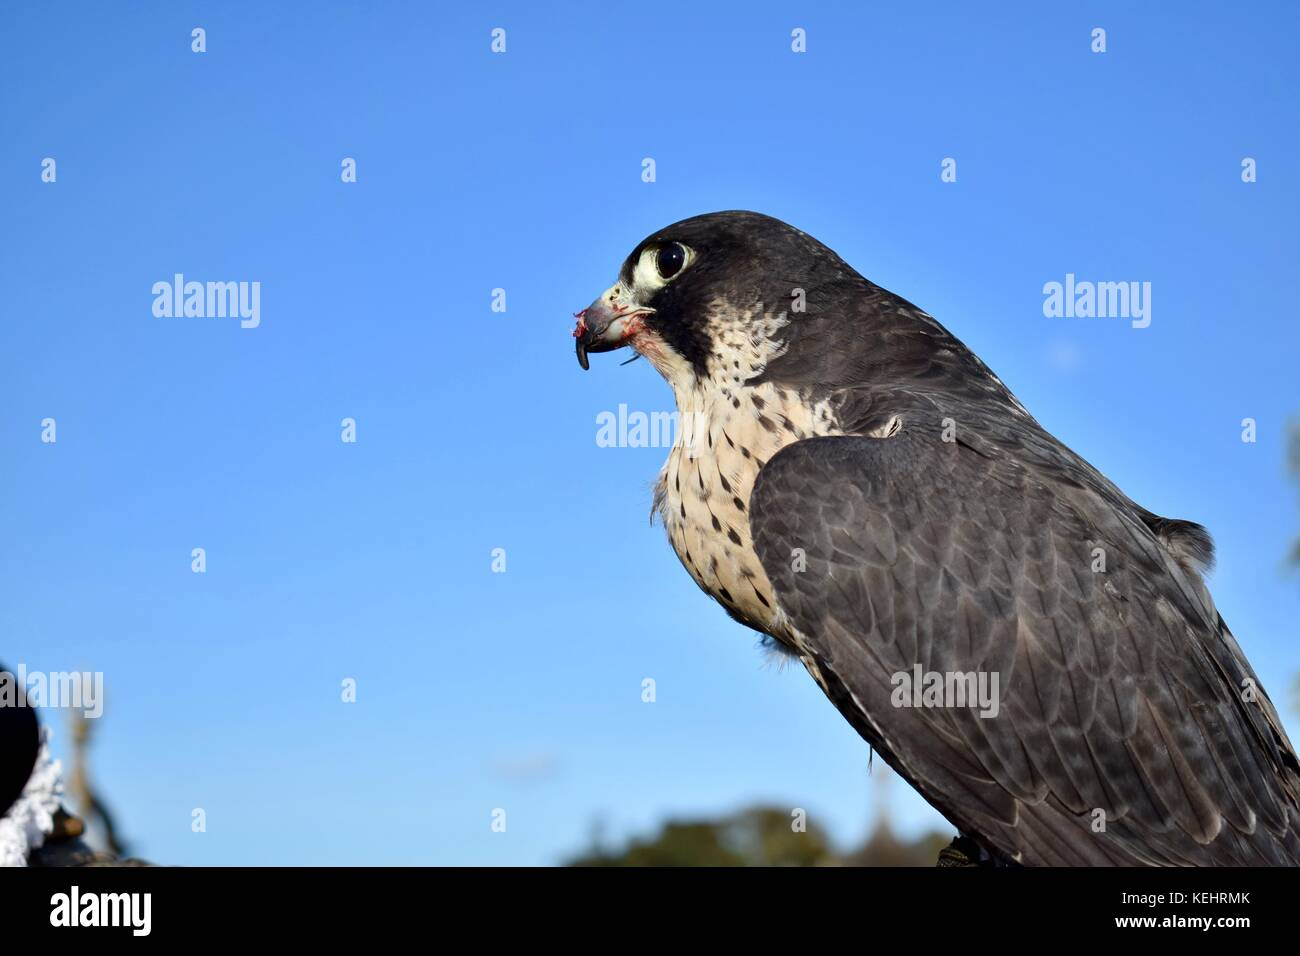 Peregrine Falconry Display at National Trust Montacute House Montacute Somerset Uk - Stock Image